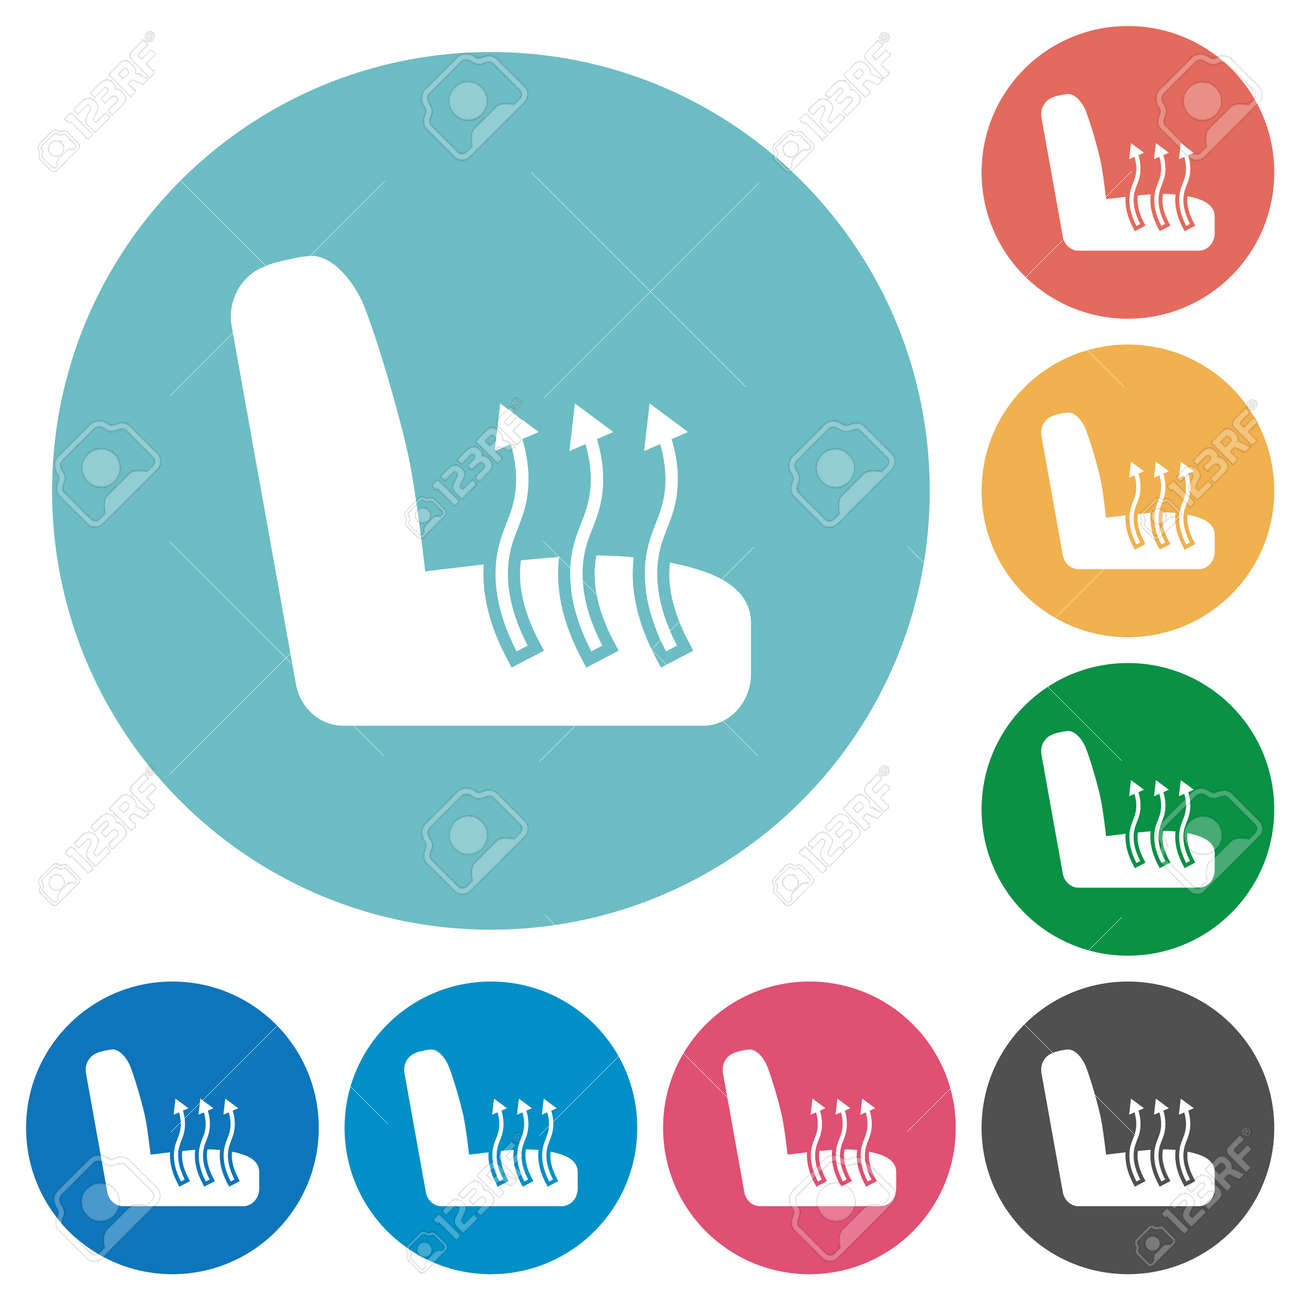 Car seat heating flat white icons on round color backgrounds - 162739535